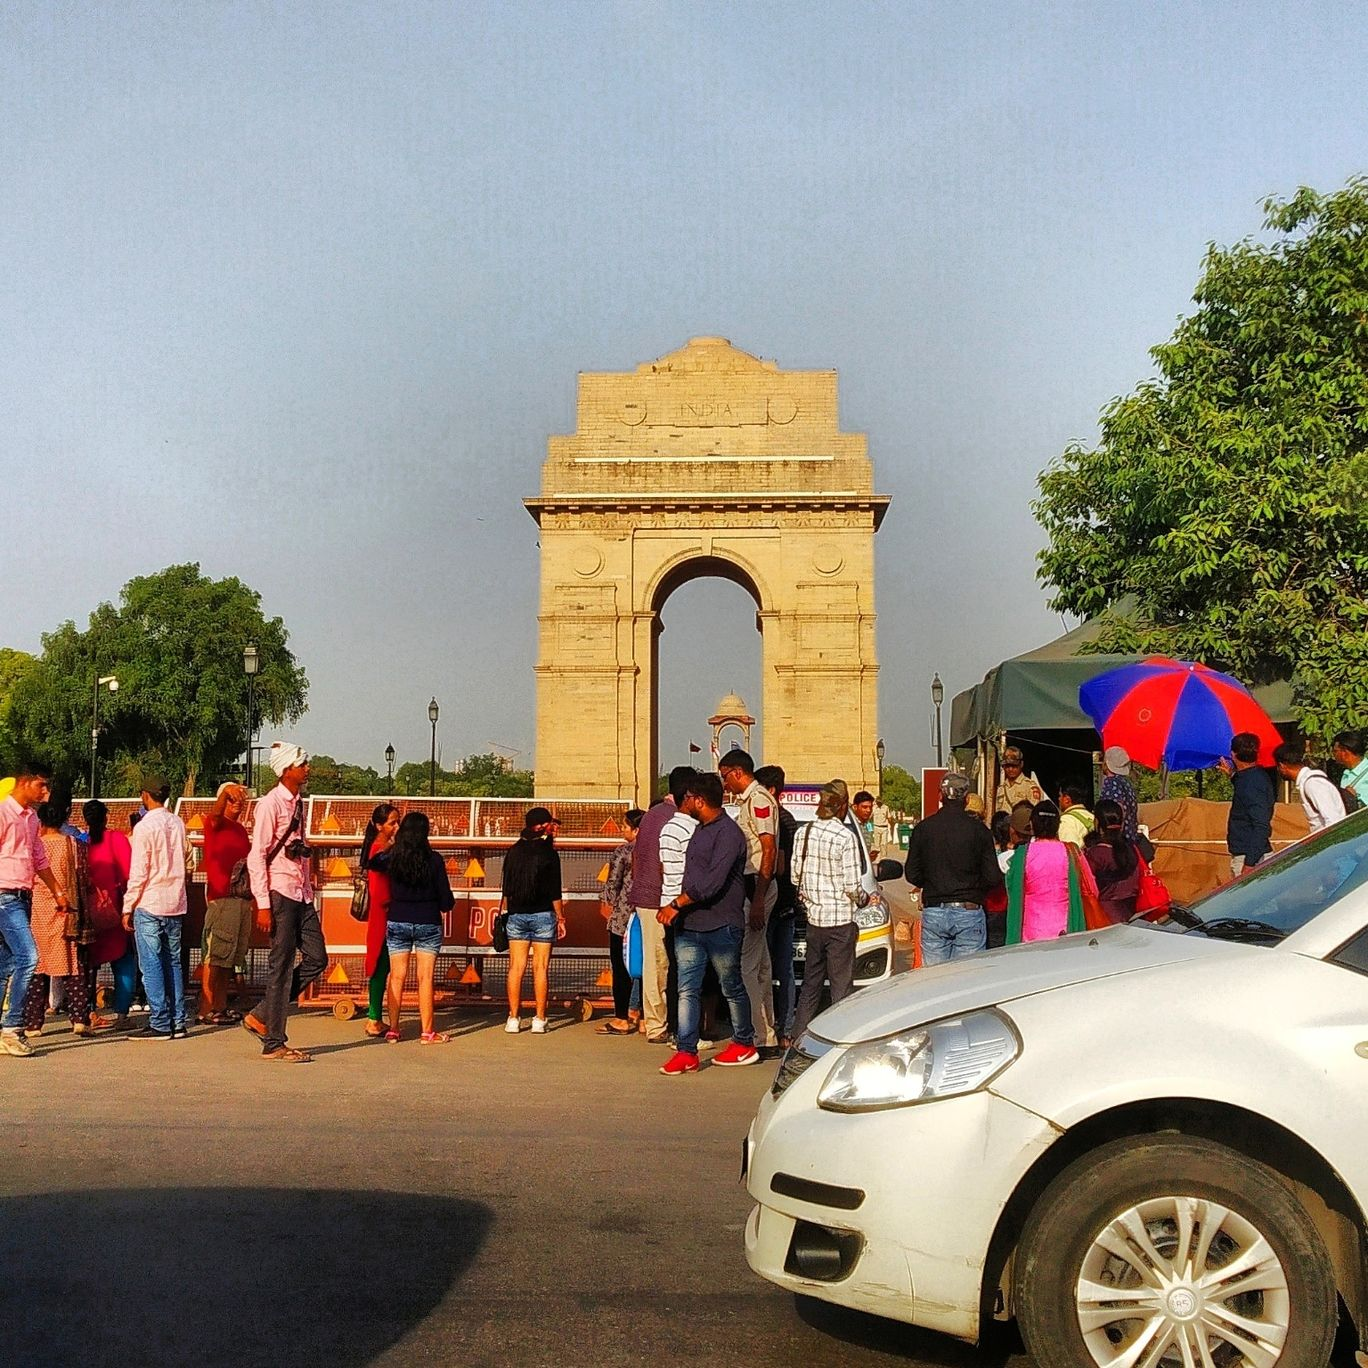 Photo of India Gate By shristi kumari